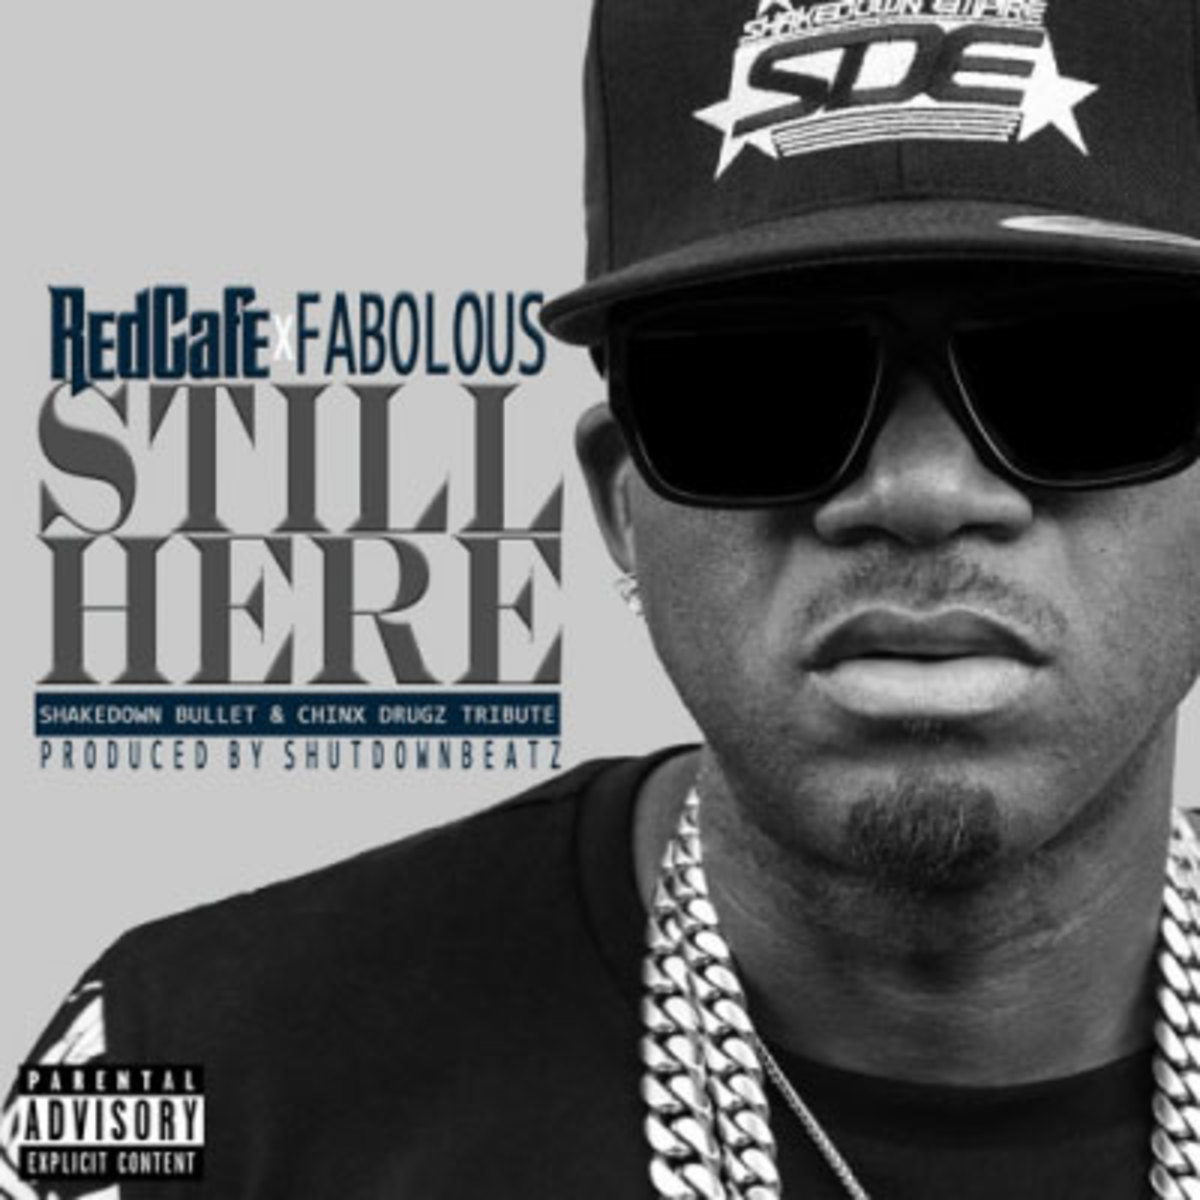 red-cafe-fabolous-still-here.jpg